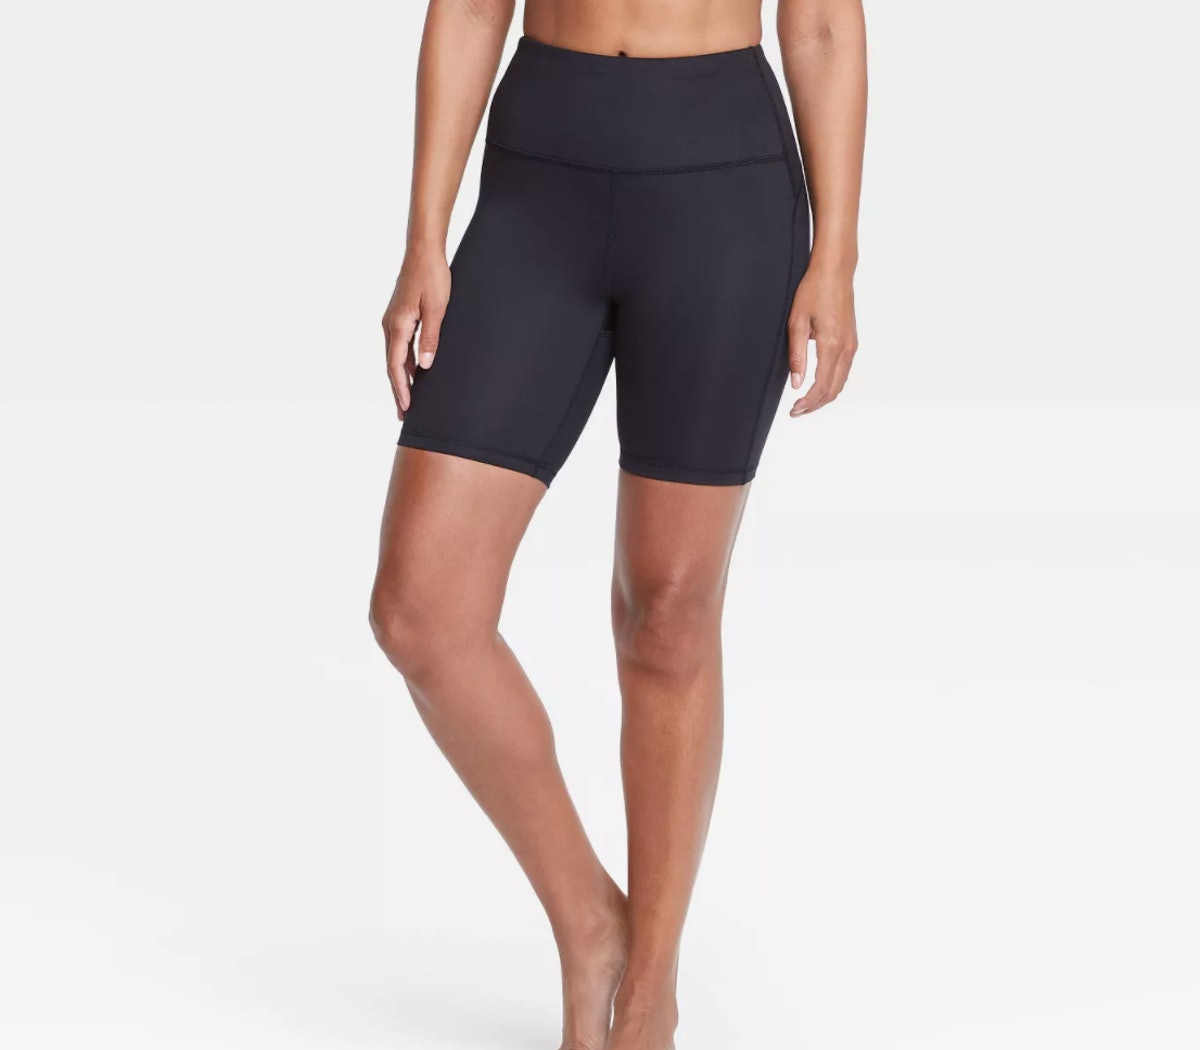 """All in Motion™ Women's Contour Curvy High-Rise Shorts 7"""" - Black"""